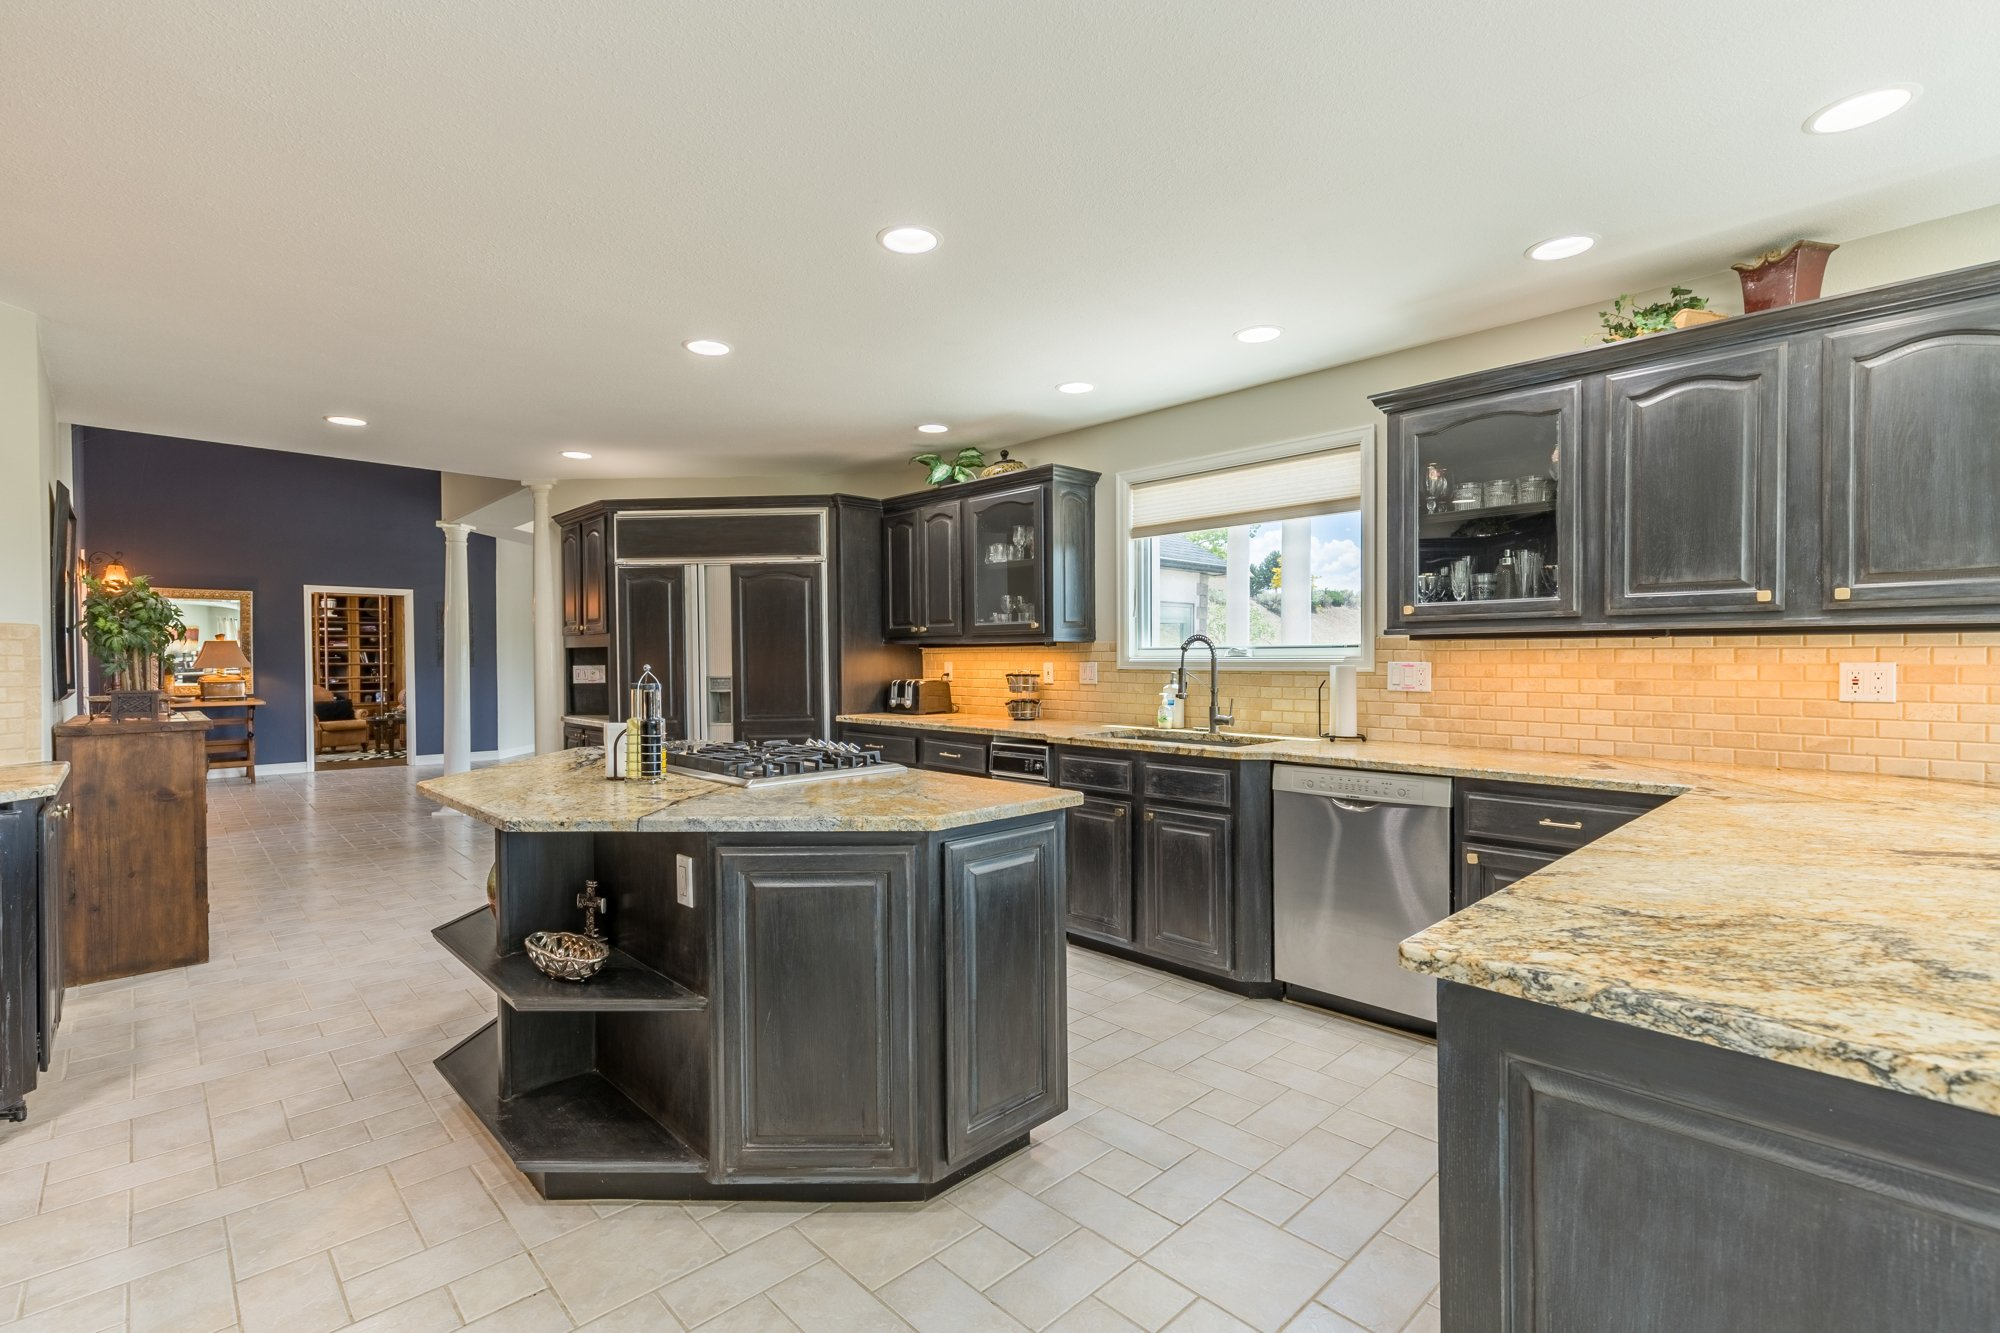 Kitchen with Island - 16955 Wildwood Dr. Montrose, CO 81403 - Atha Team Luxury Real Estate